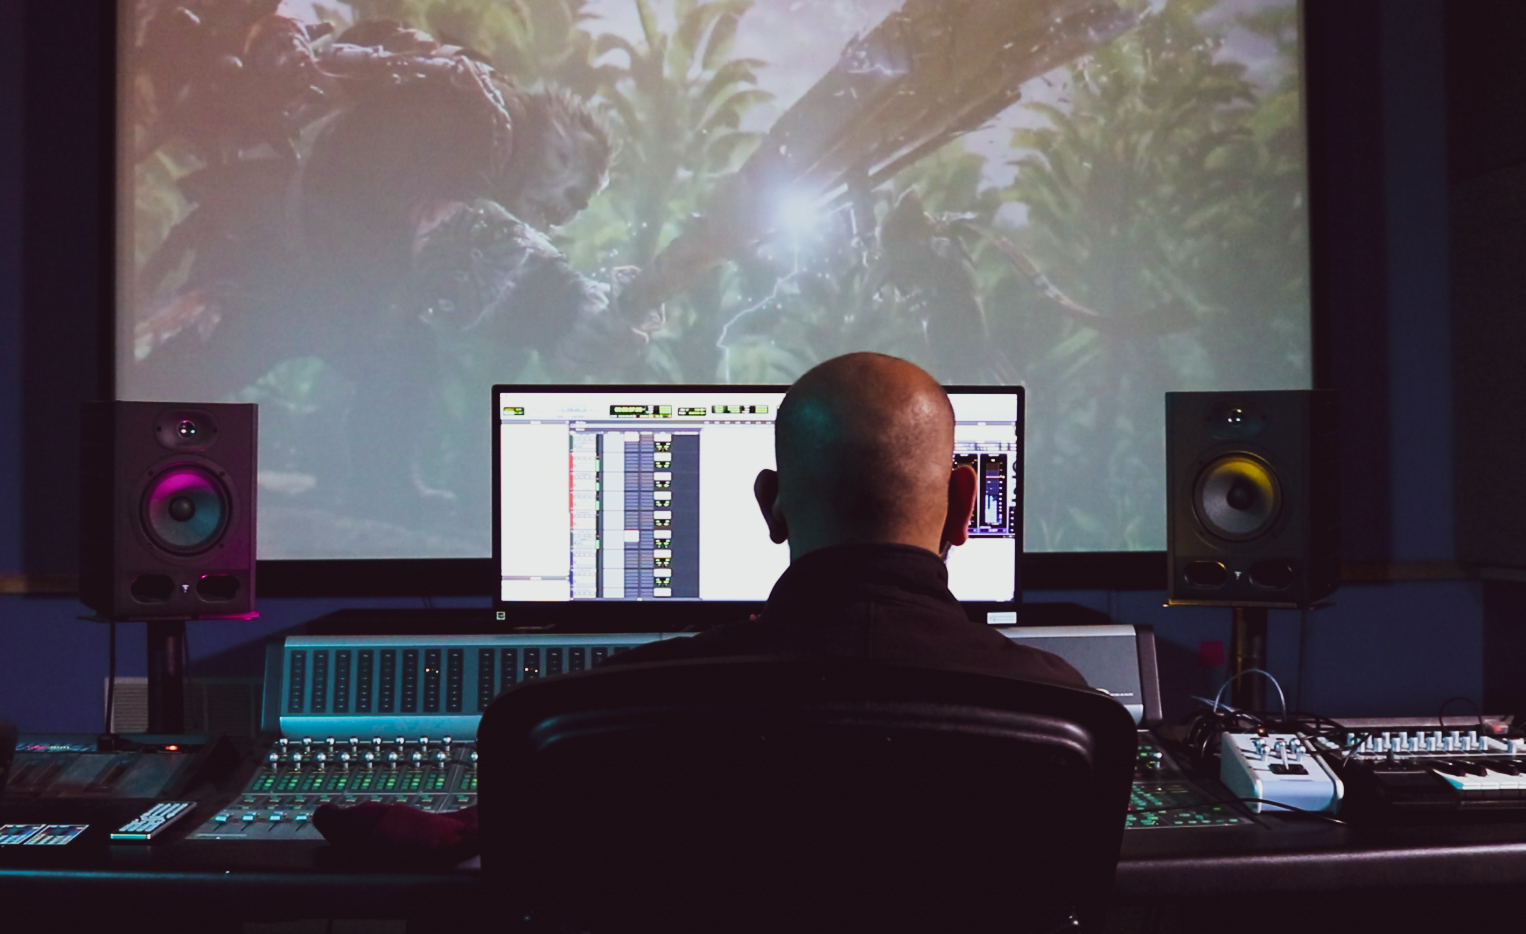 """Train at a """"AAA"""" Game Audio House - Pyramind has produced audio, VO, sound design and music for some of the top games and game companies in the world - Insomniac, Ubisoft, Samsung, Microsoft and Amazon, to name a few. From """"Halo"""" and """"Overwatch"""" to new titles in VR, you'll begin your career in game audio by learning from working game audio producers."""